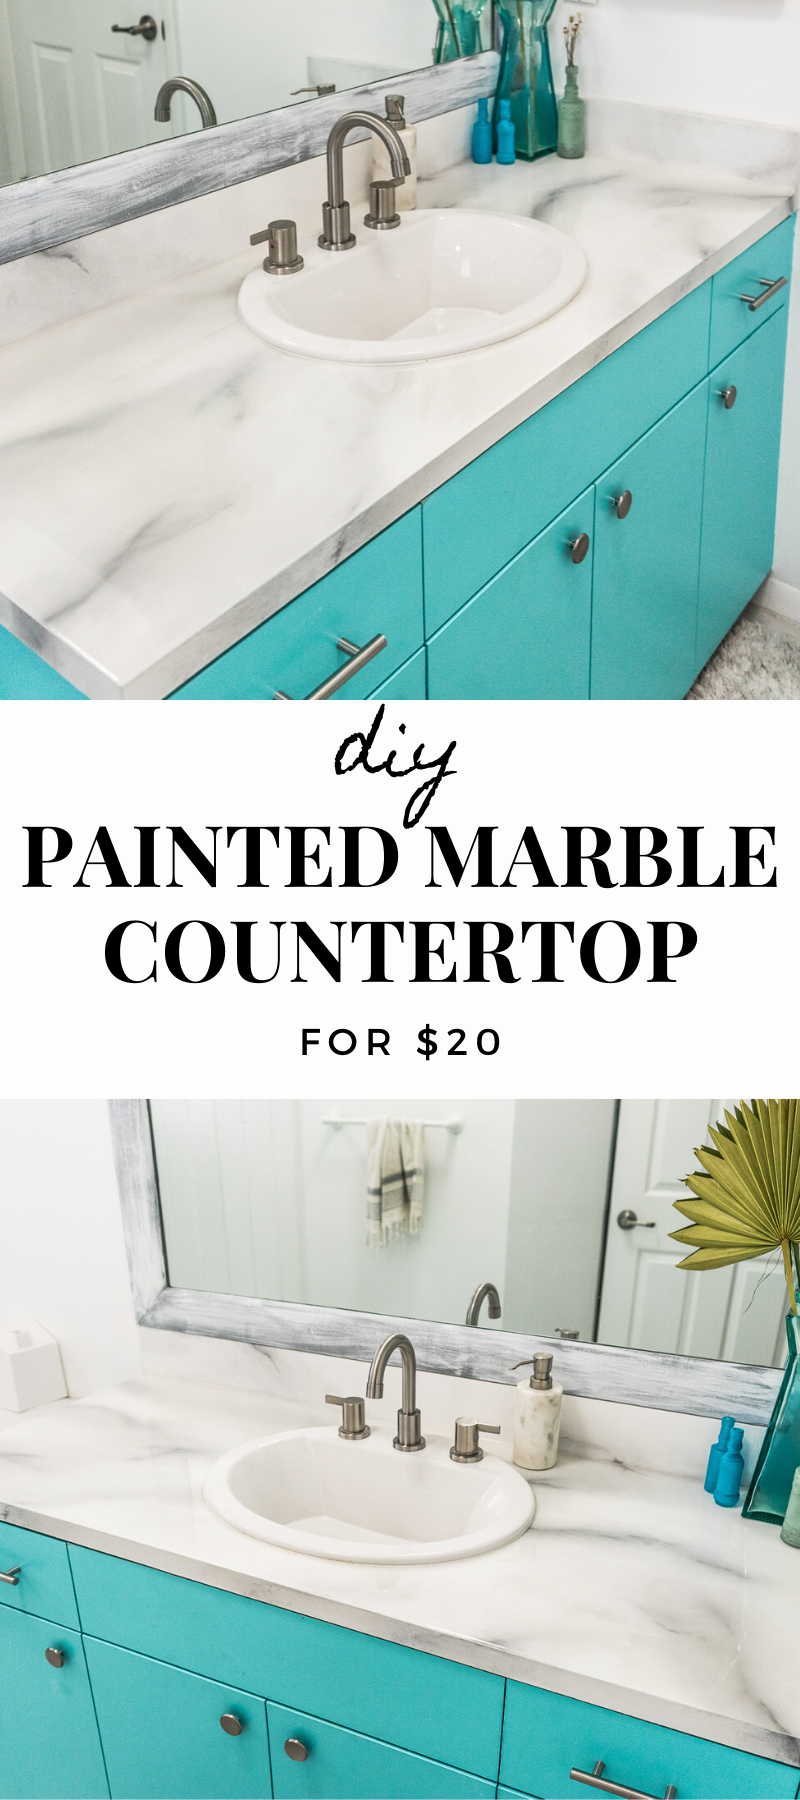 Diy Faux Marble Countertops For 20 In 2020 Marble Countertops